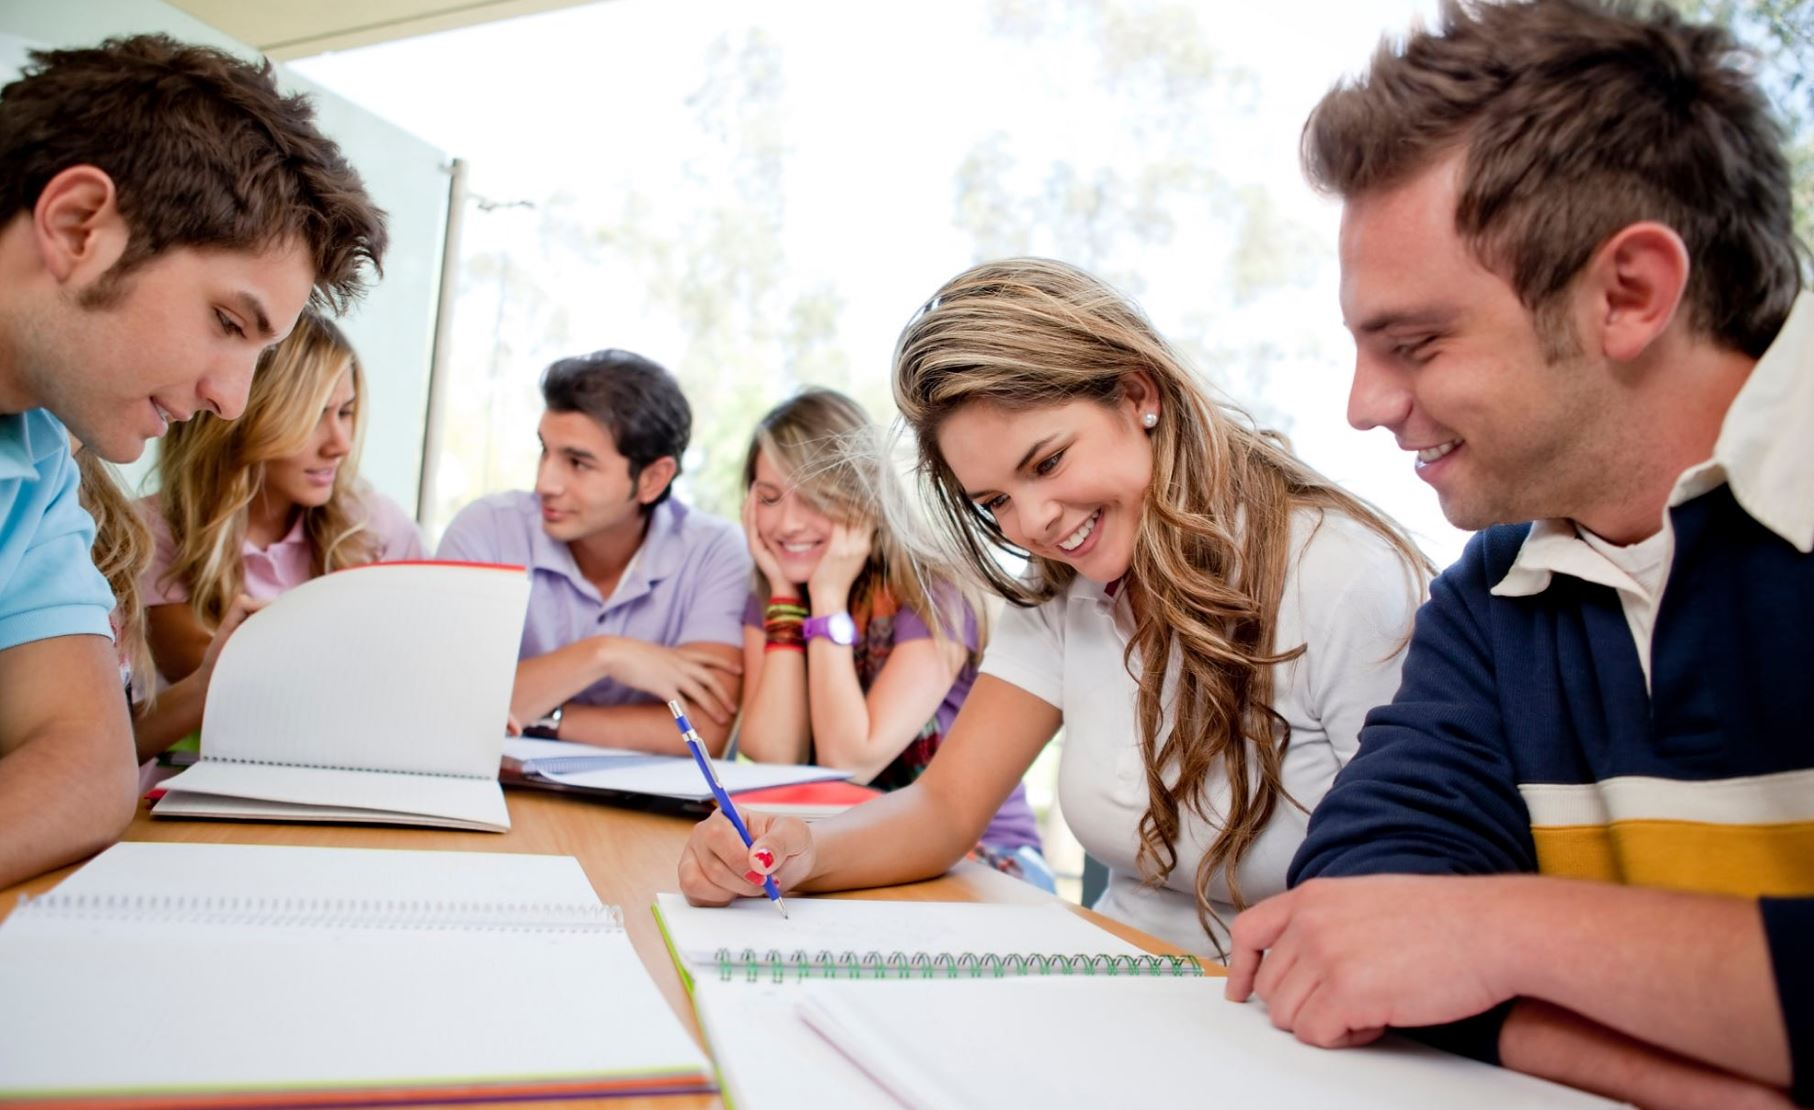 online writing help for high school students Writing essay help, buy essays cheap, purchase term paper, write dissertation, chemistry homework help online, research paper writer online, essays buy, buy a college paper for chea, can someone do my accounting homework, help writing papers, best essay site, custom law essays uk, accounting.